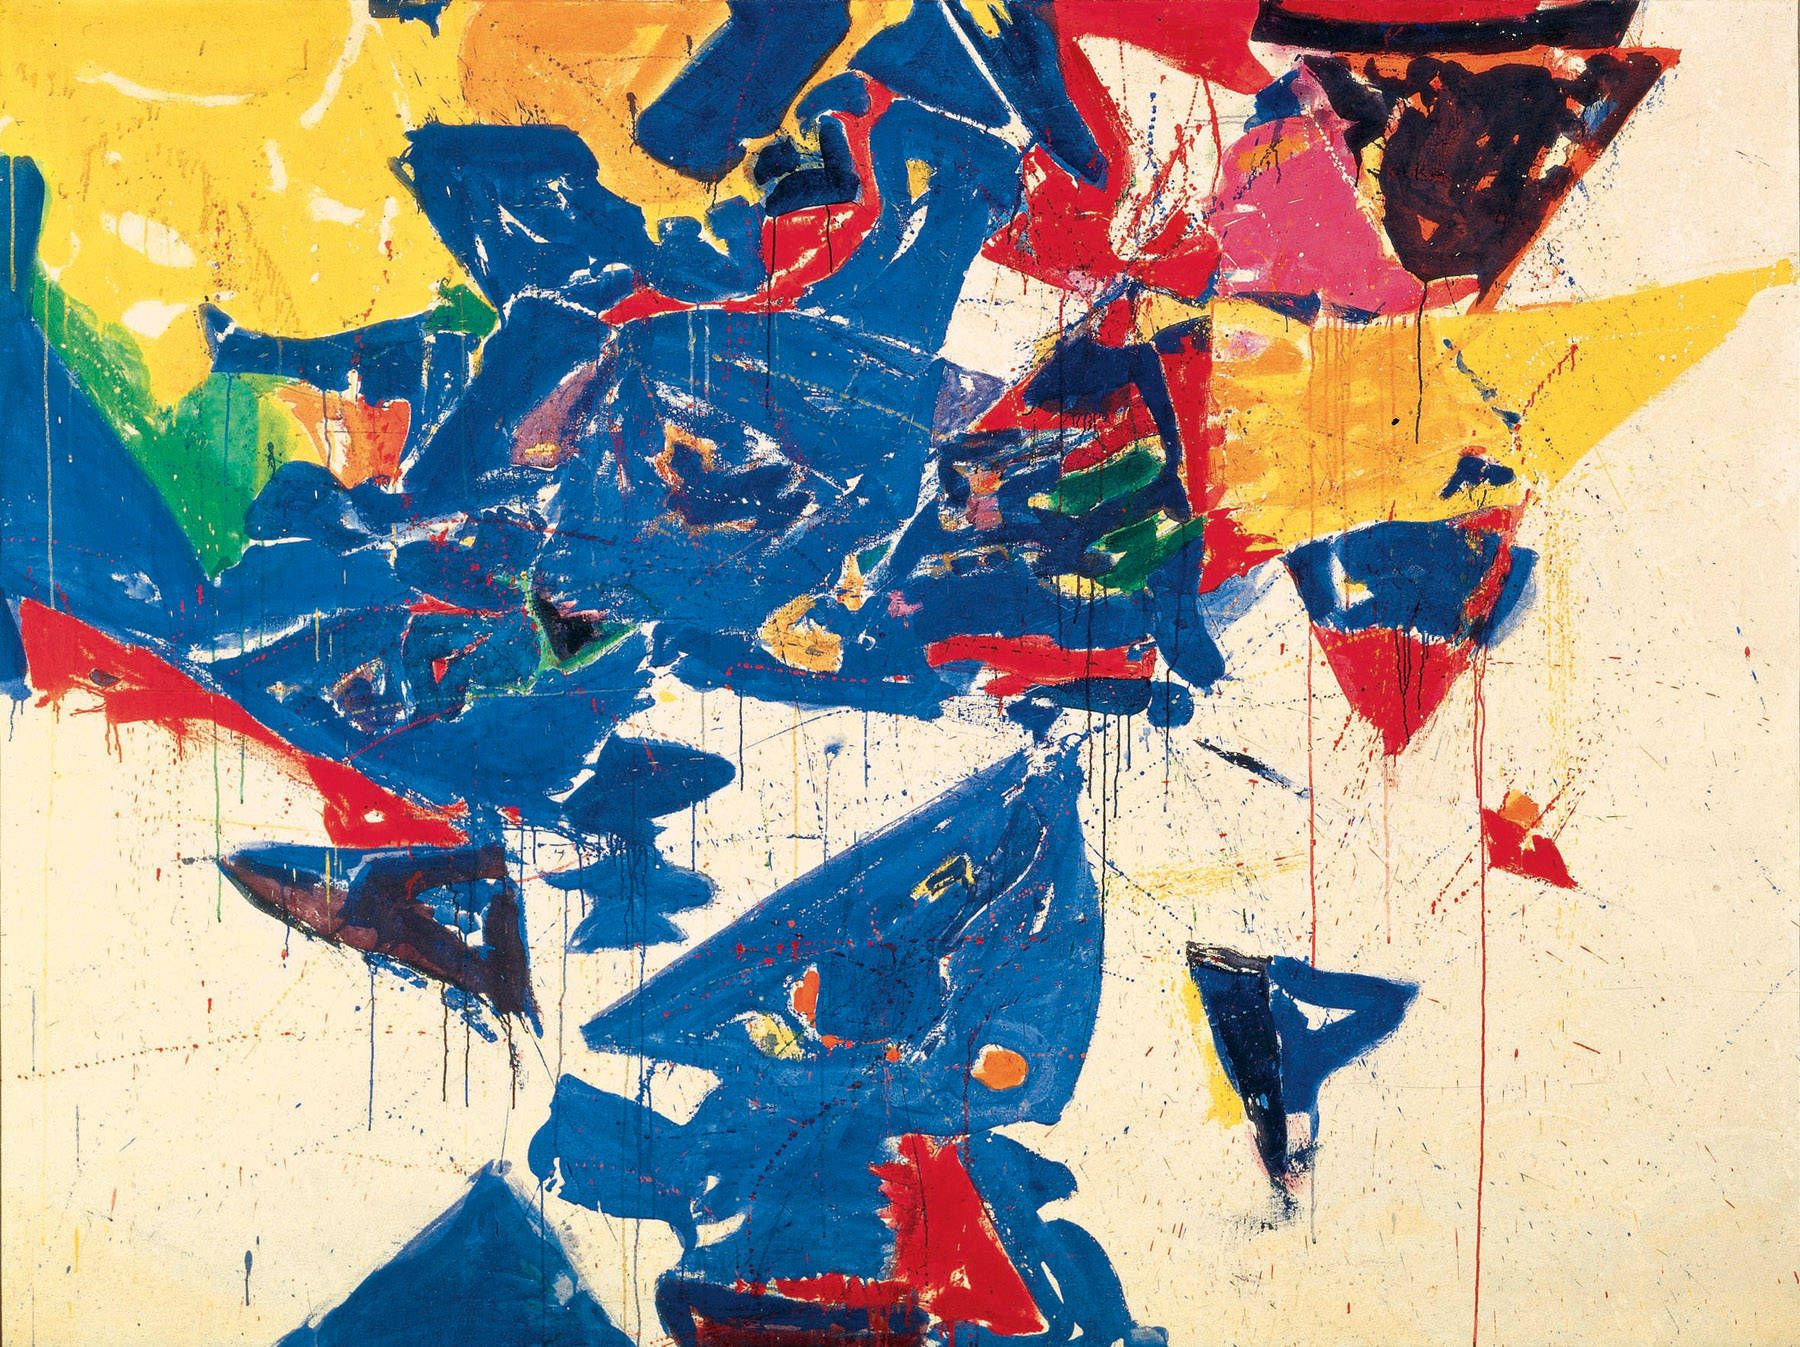 Middle Blue Iii 1959 Sam Francis Wikiart Org